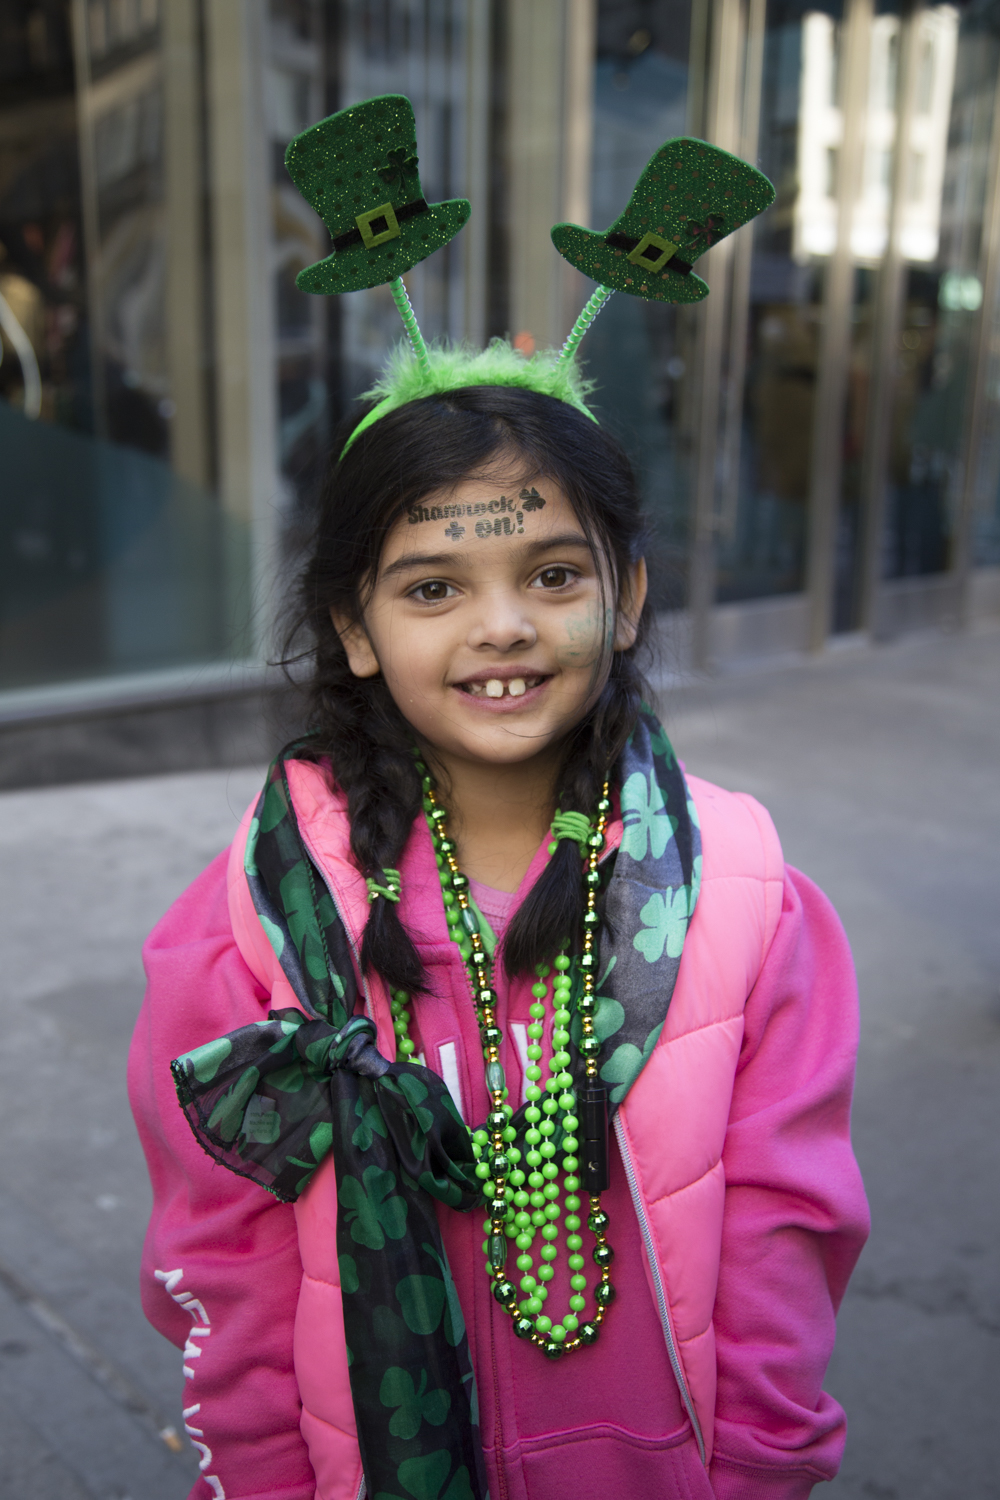 Shay Ramjohn, 6, celebrates her Irish pride during the 2018 St. Patrick's Day Parade in Manhattan. Ramjohn's father stated that she is half Irish and half Guyanese. (Staten Island Advance/Shira Stoll)